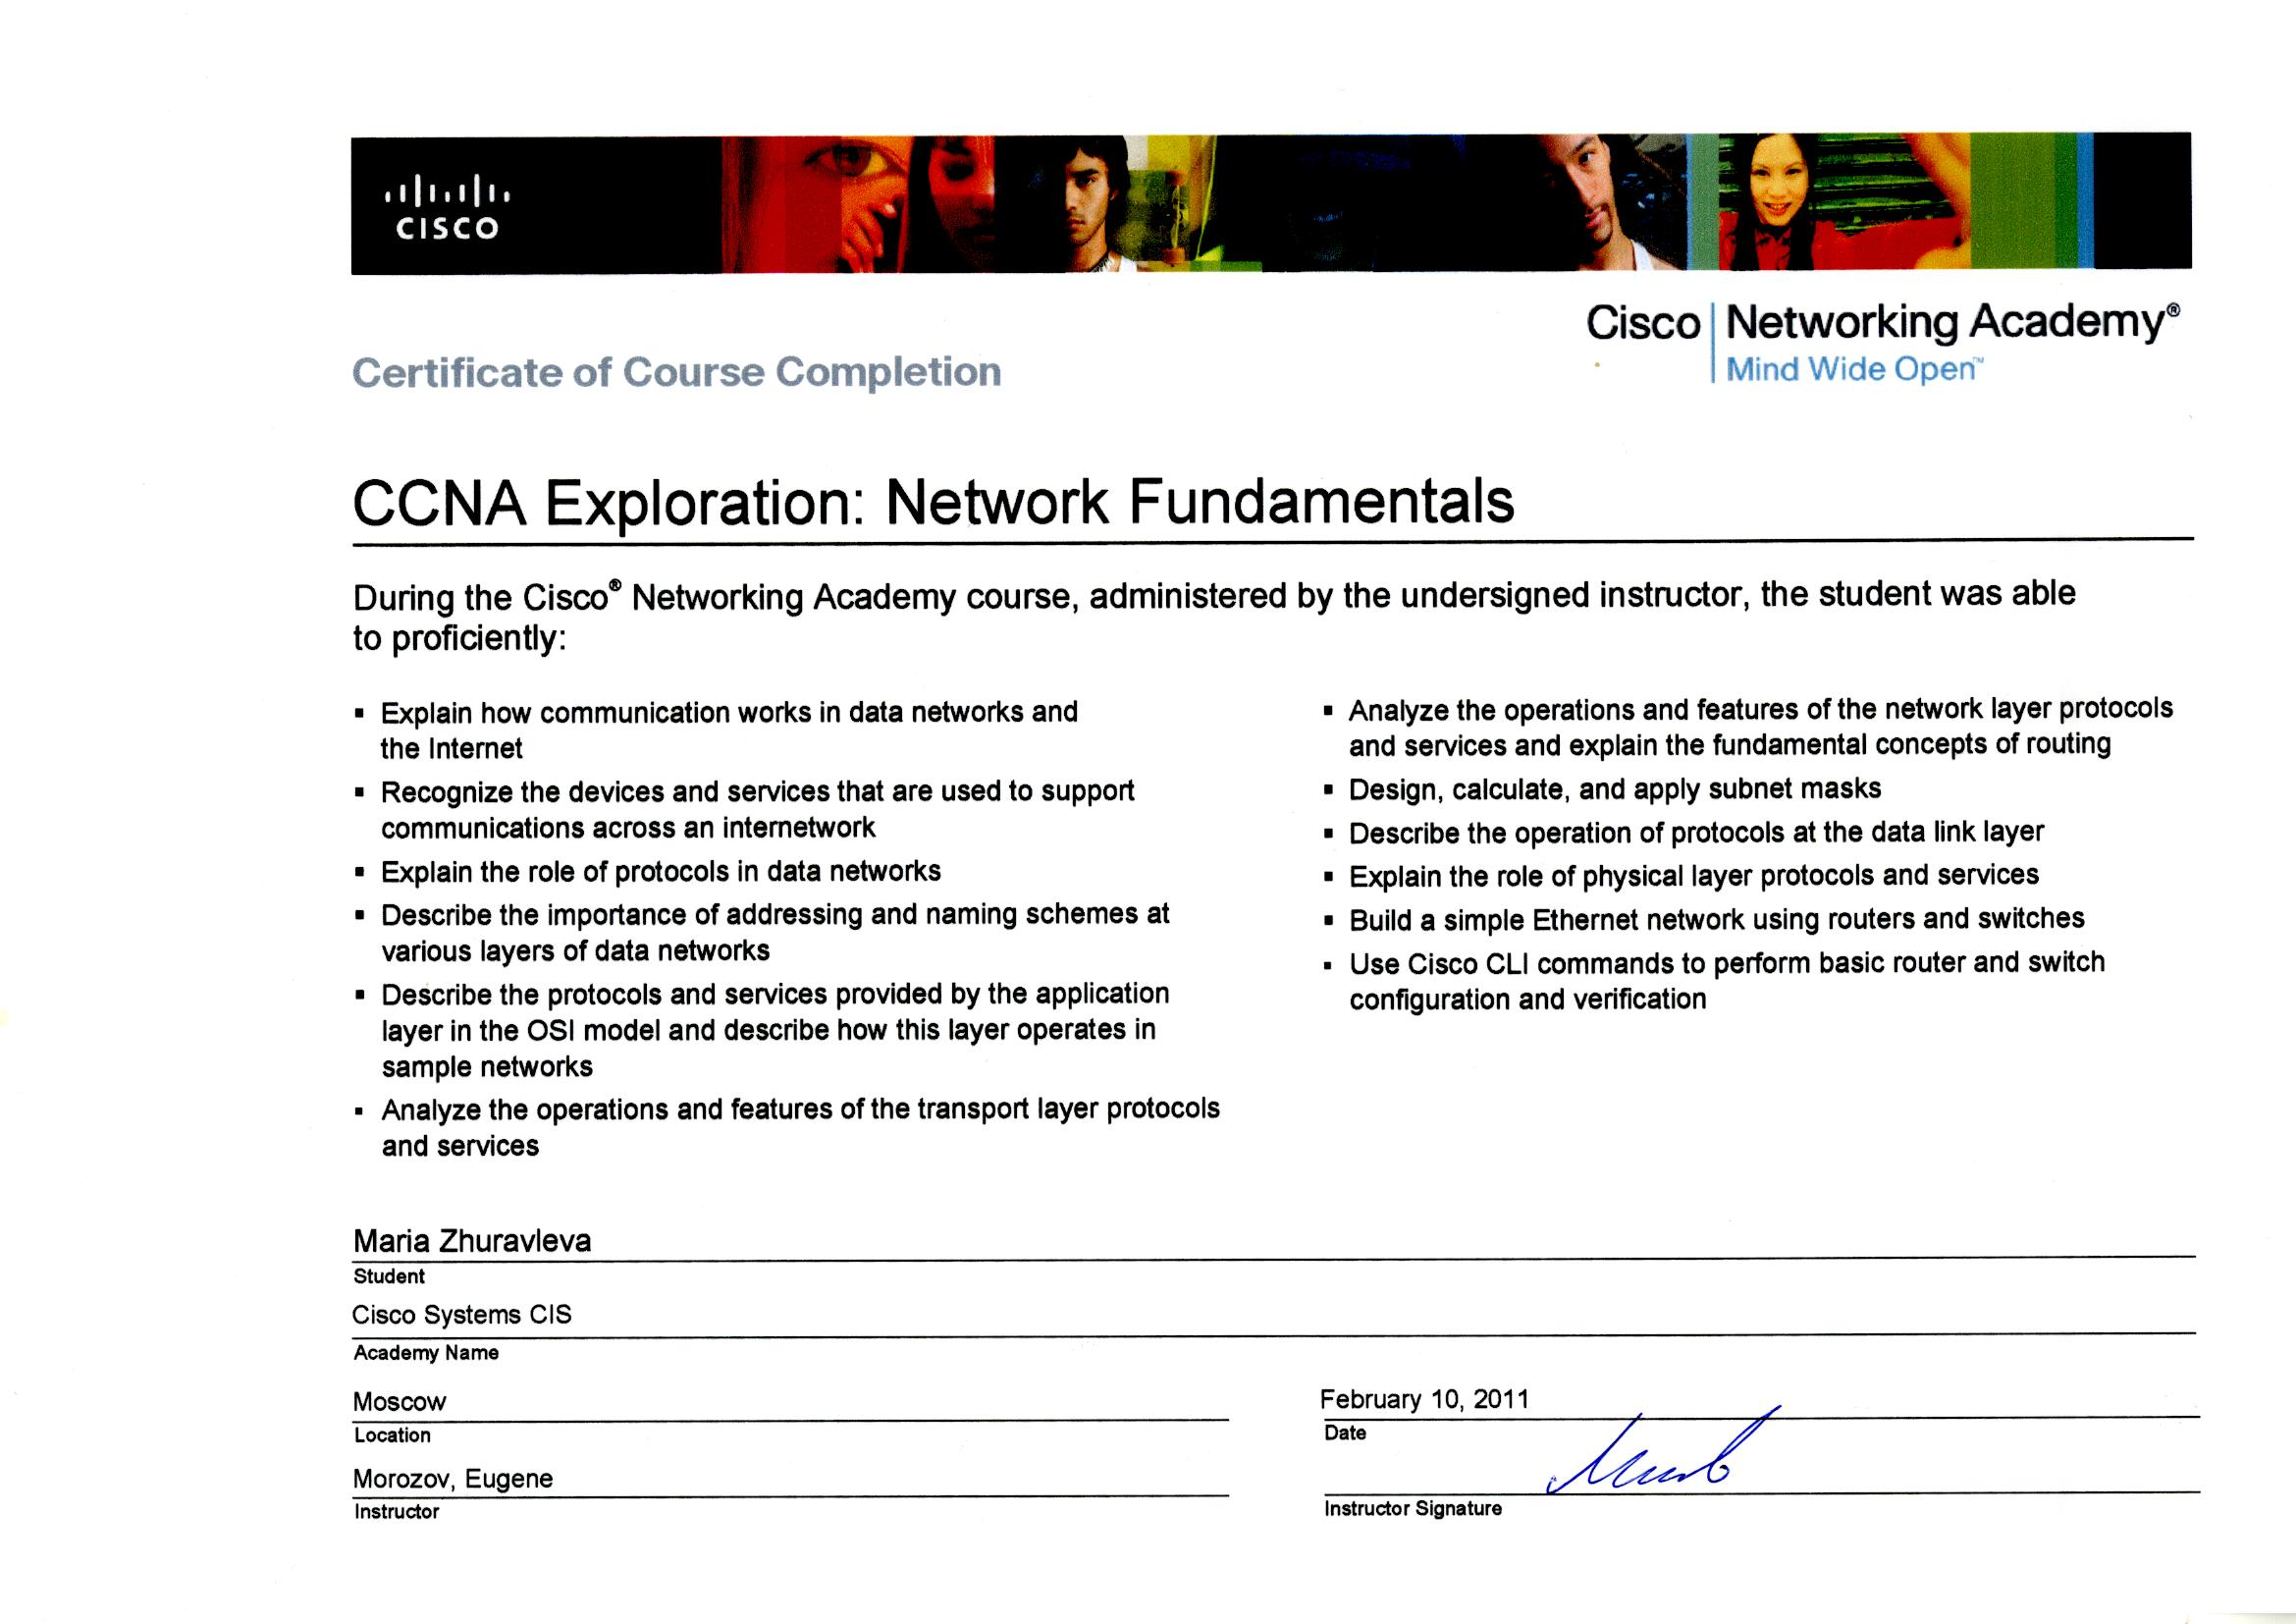 Cisco Networking Acedemu alumni are able to get a discount voucher of 50 %  to pass industrial exams 640-802 CCNA, 640-822 ICND1, 640-816 ICND2.